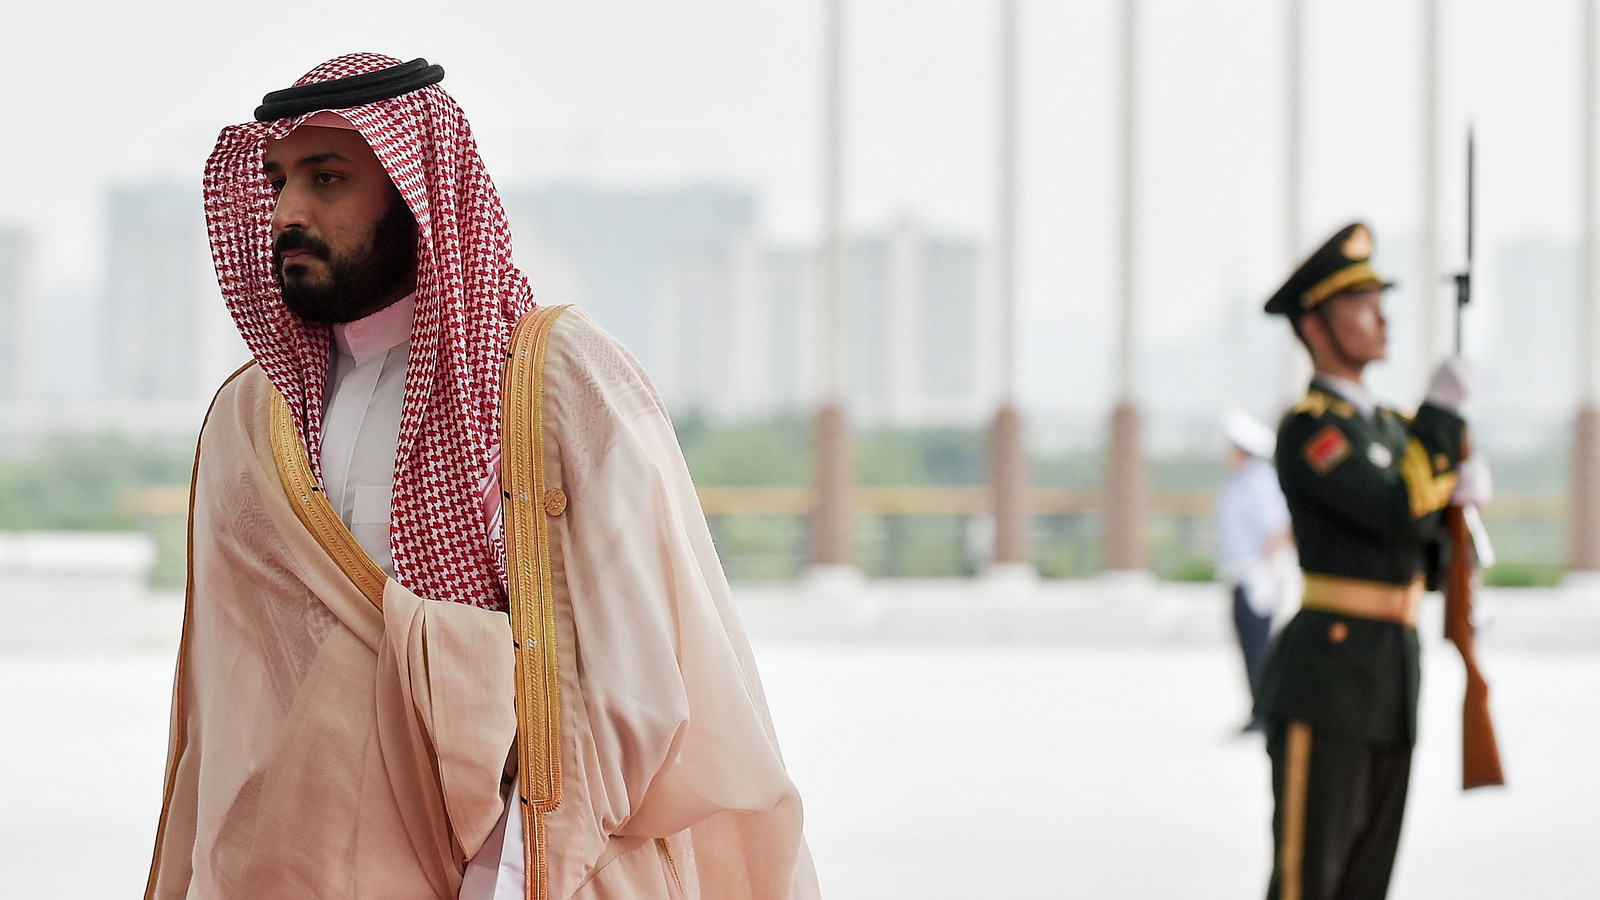 Saudi Arabia's Crown Prince Mohammed bin Salman arrives at the Hangzhou Exhibition Center to participate in G20 Summit, Sept. 4, 2016 in Hangzhou, China. (Etienne Oliveau/AP)